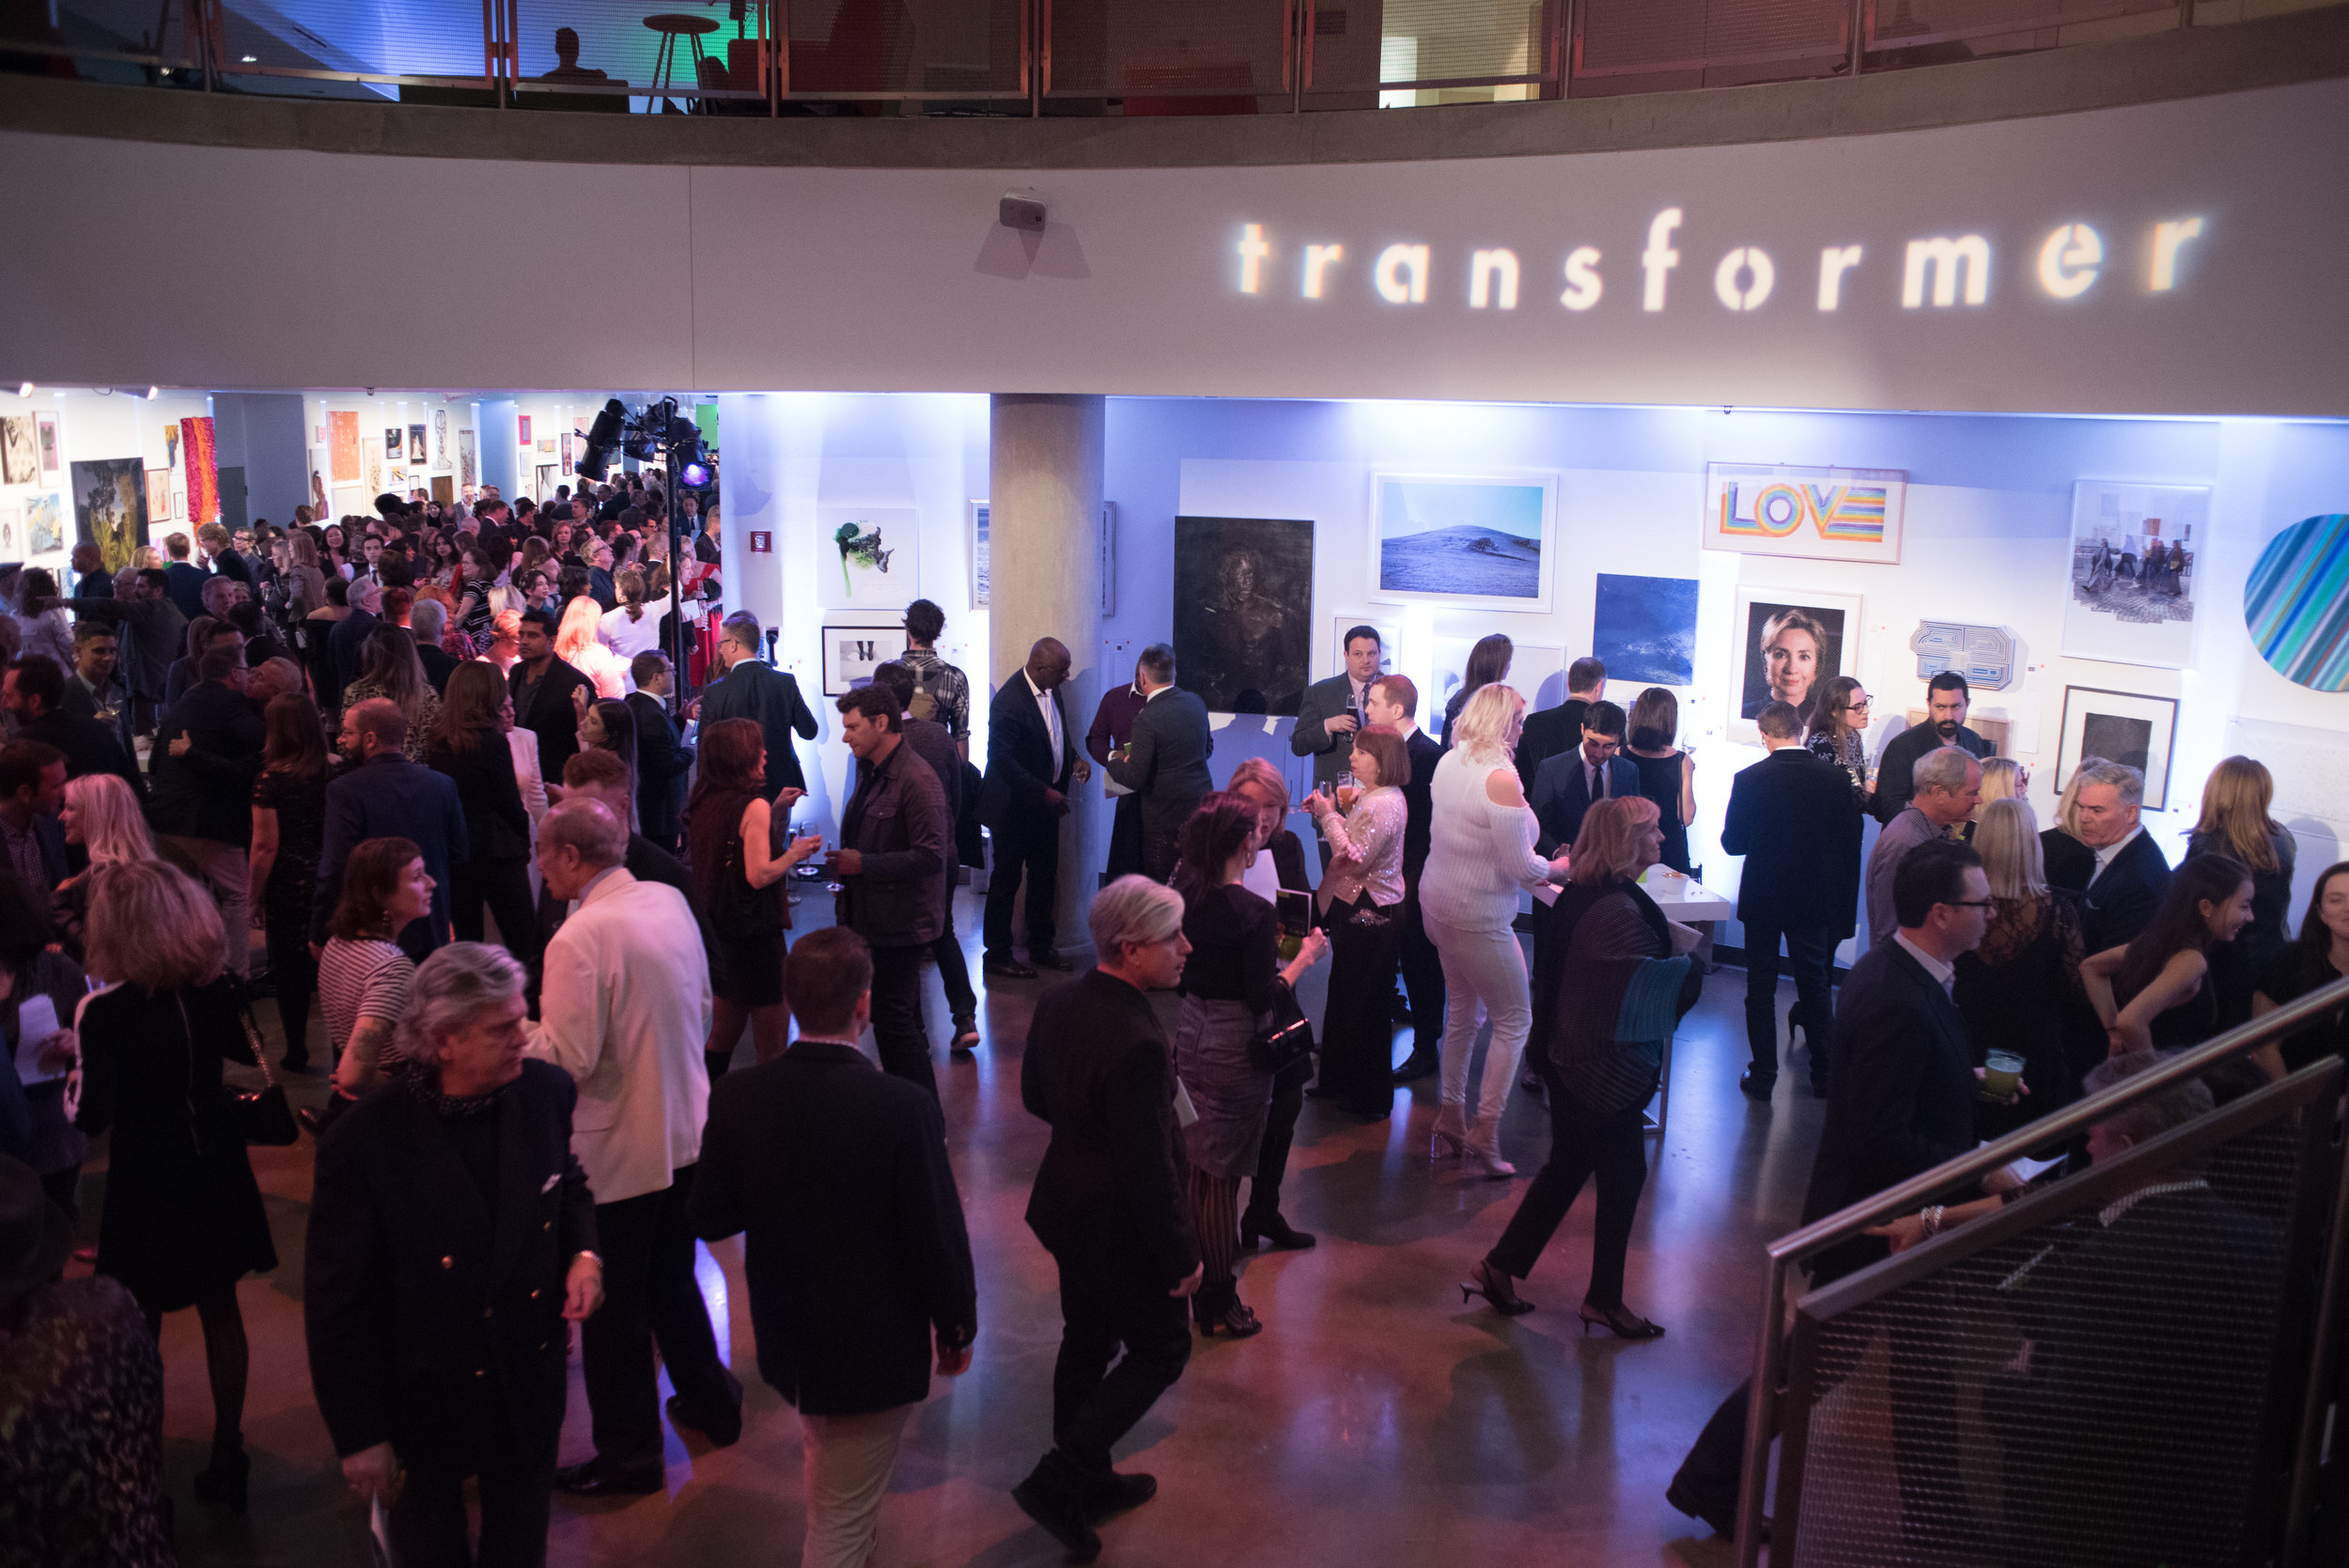 13th Annual Transformer Silent Auction -